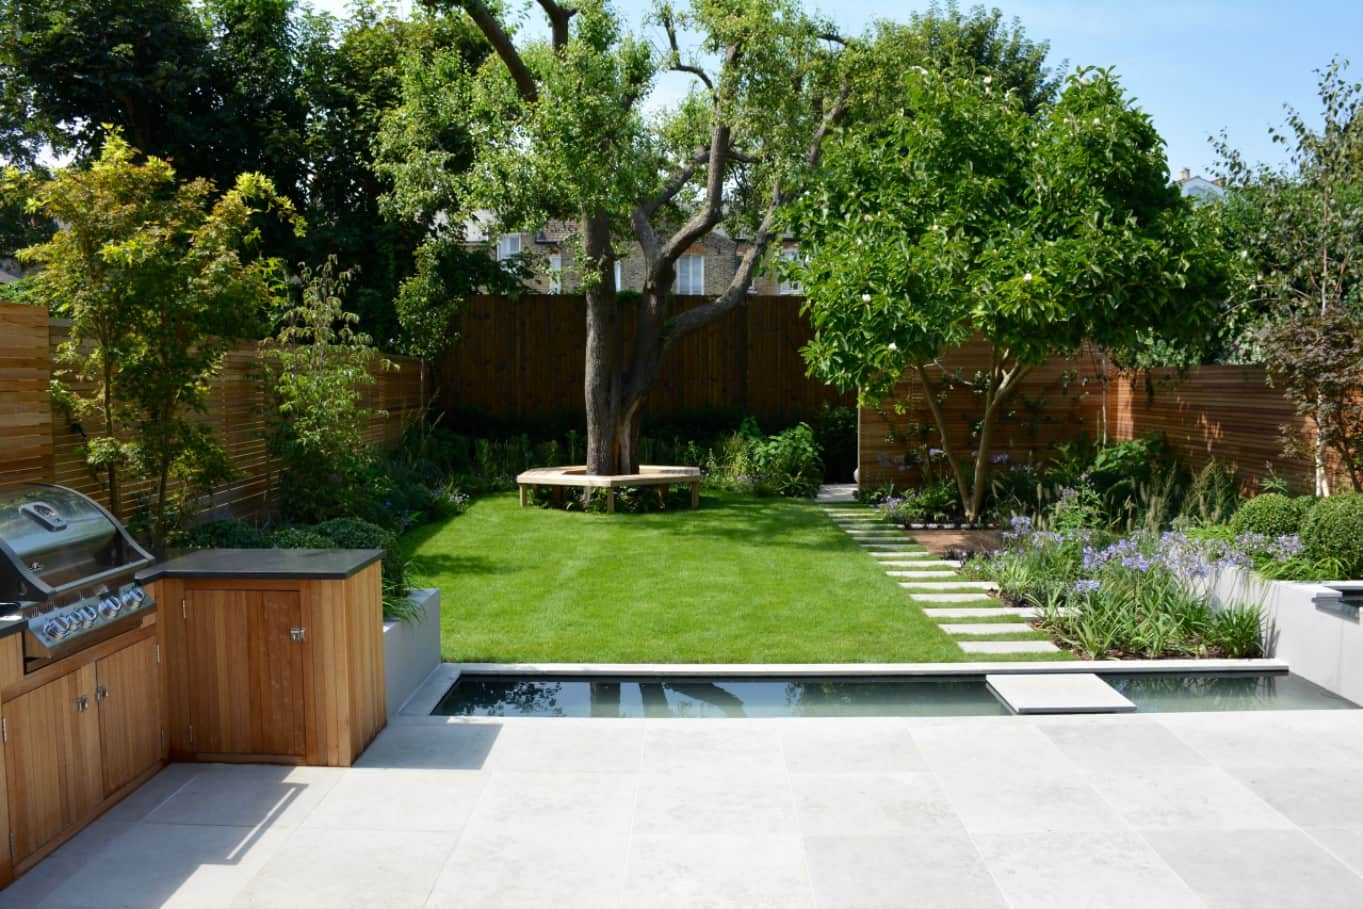 Designing the Perfect Garden For Your Retirement. Artificial grass and concrete poured zone for BBQ